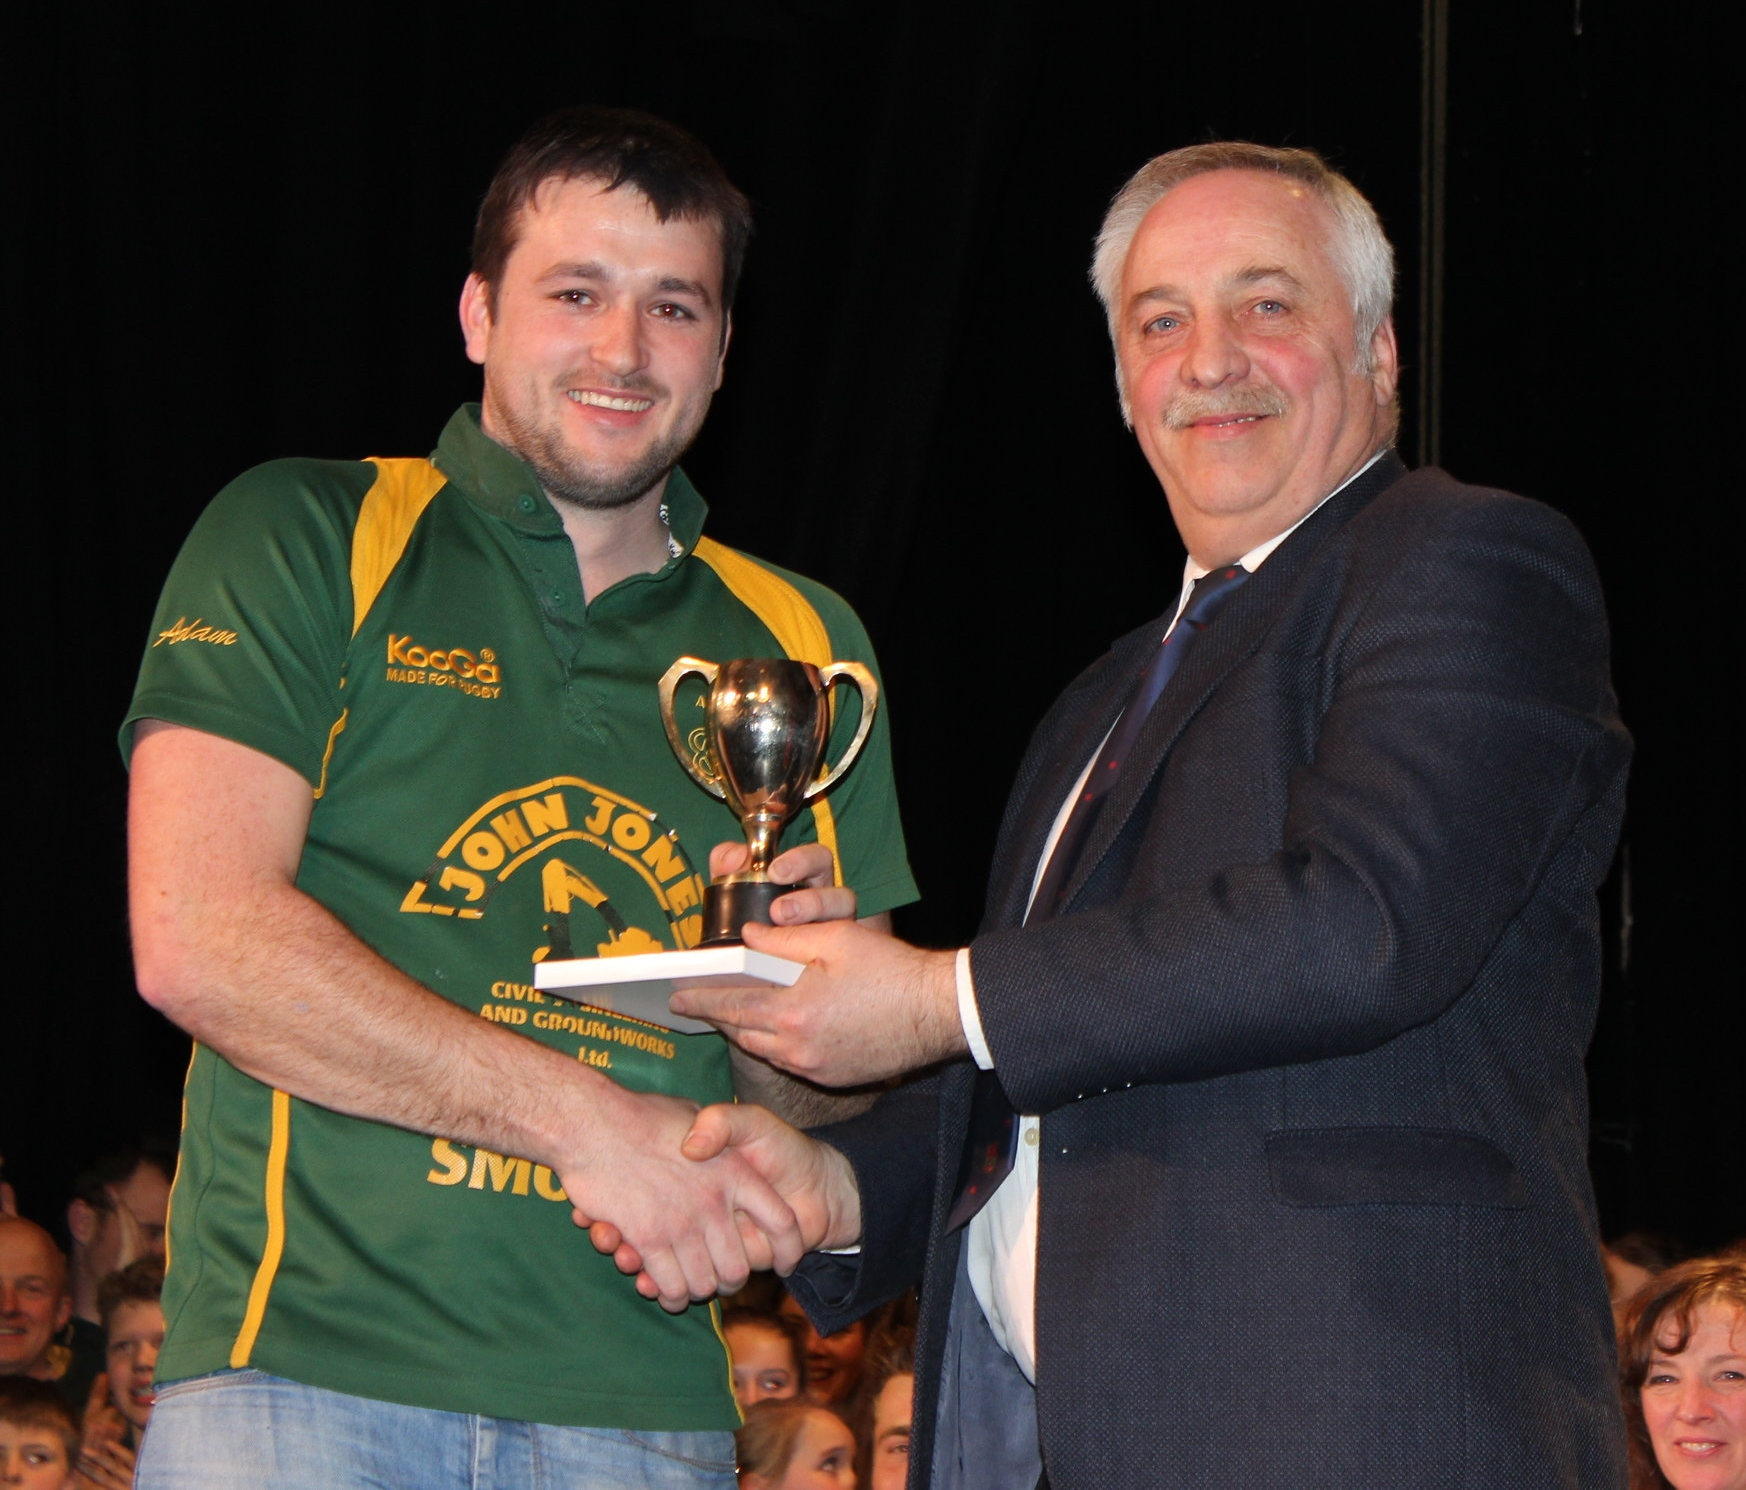 Adam Lewis, Aberedw YFC being presented with the 'Mr & Mrs R H Moseley Cup' for best individual male performance by David Powell, FUW